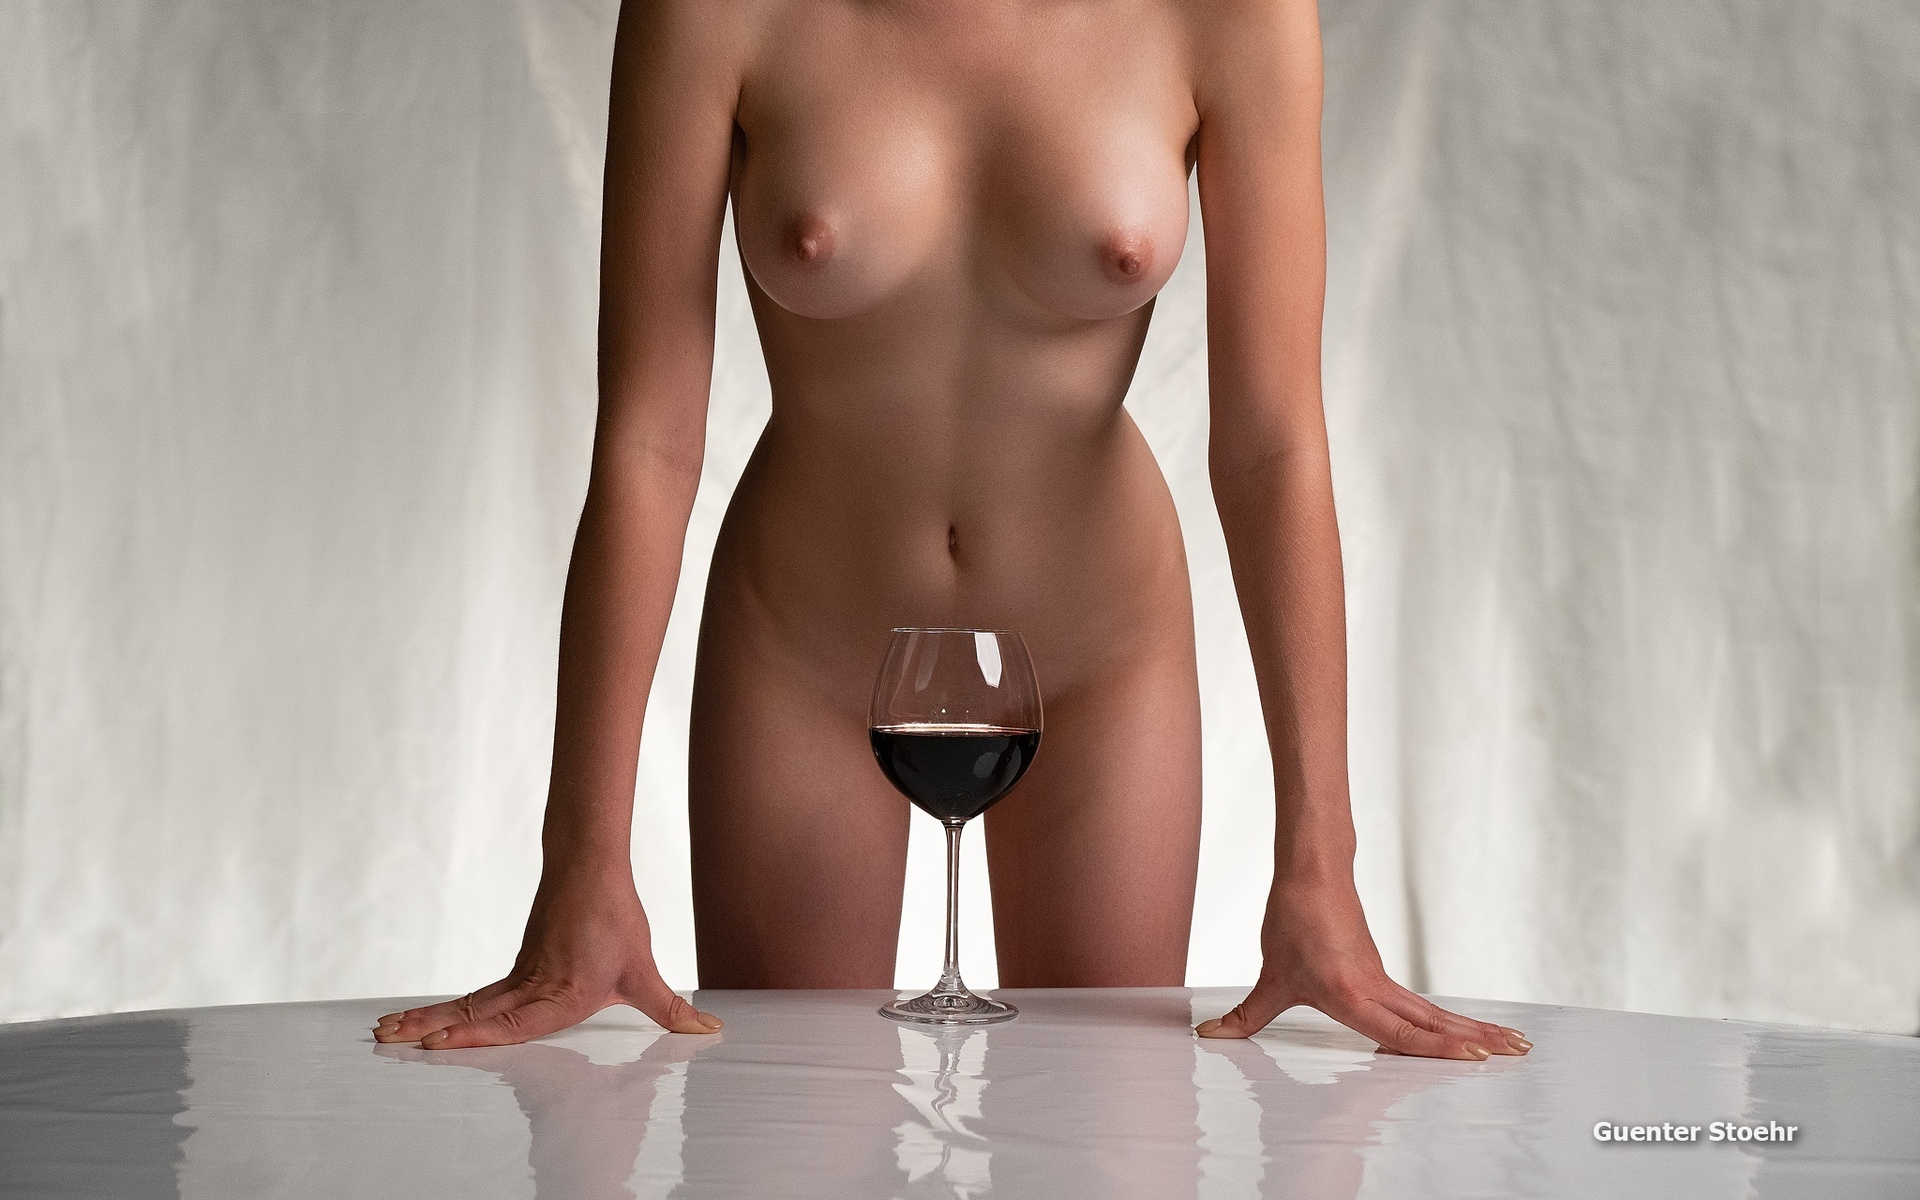 Nude woman red wine photography by johan swanepoel